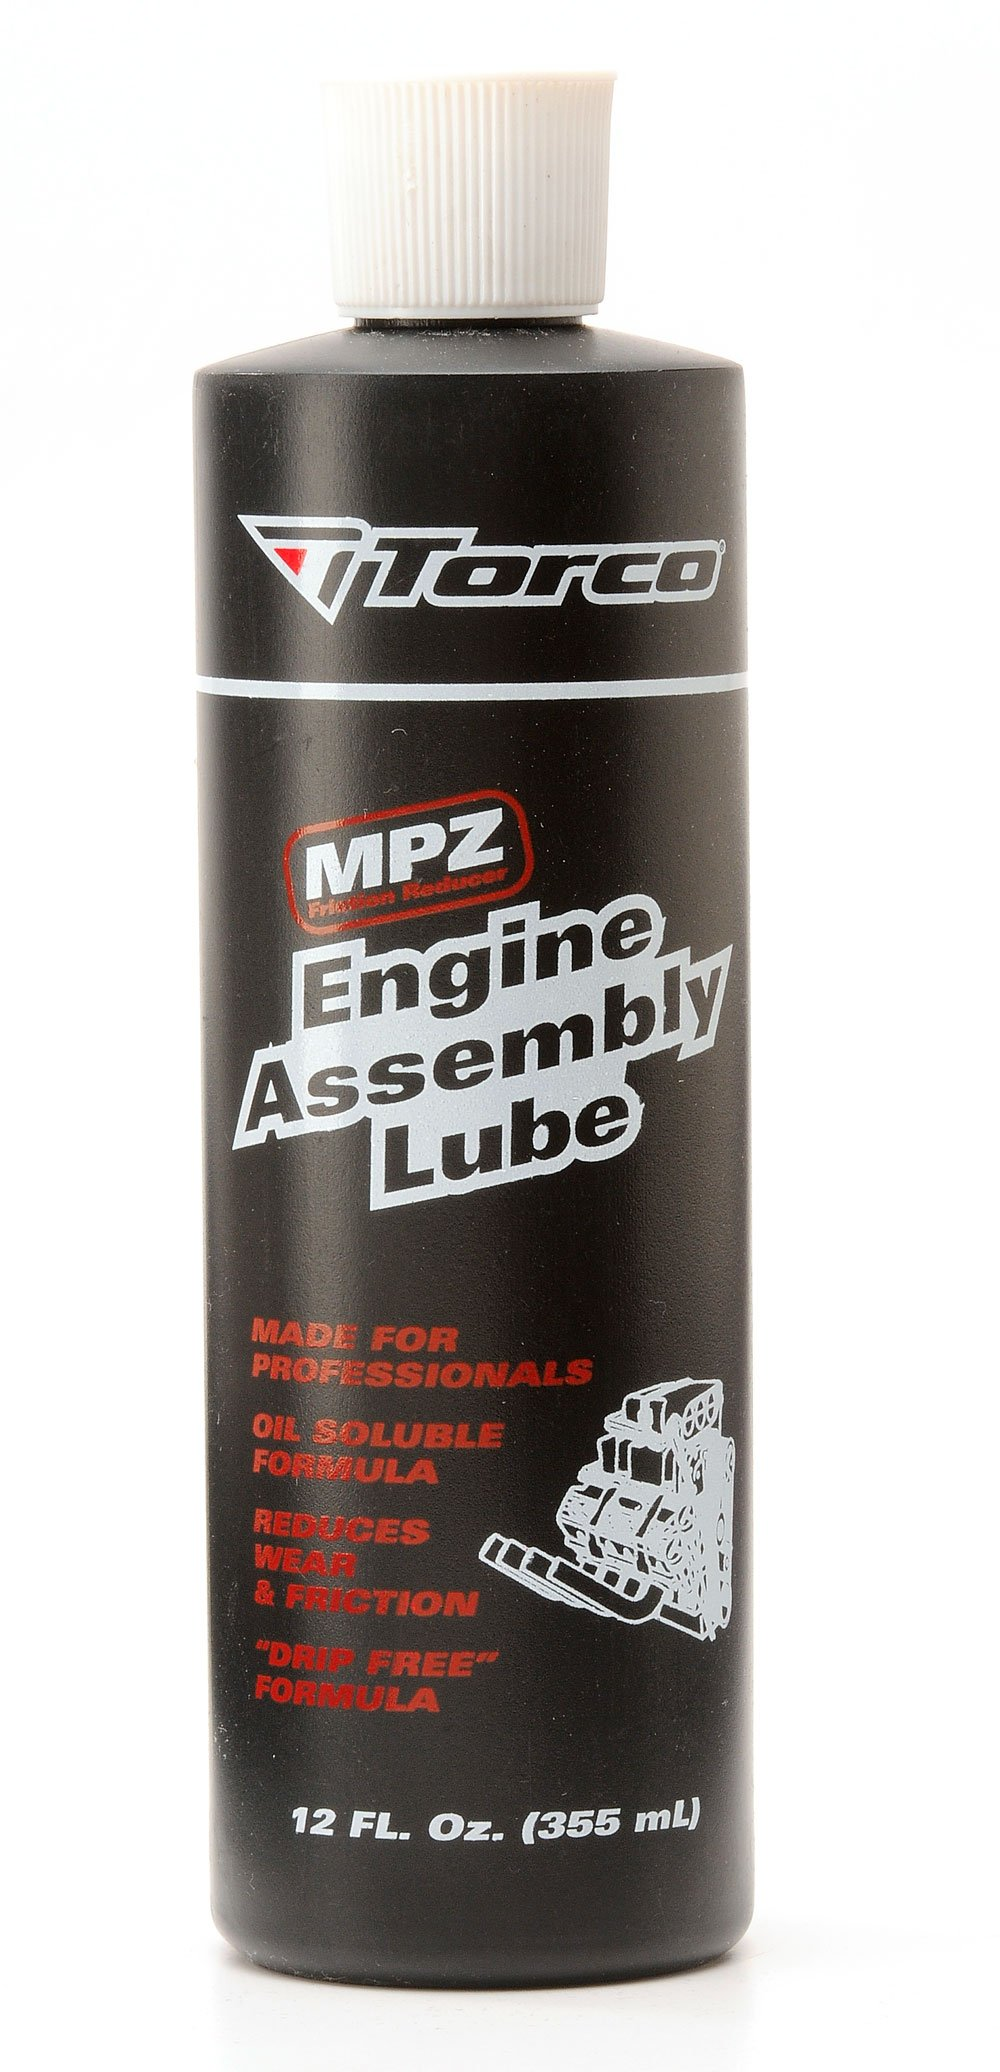 Torco A550055K MPZ Engine Assembly Lube Tube - 12 oz, (Case of 12) by Torco